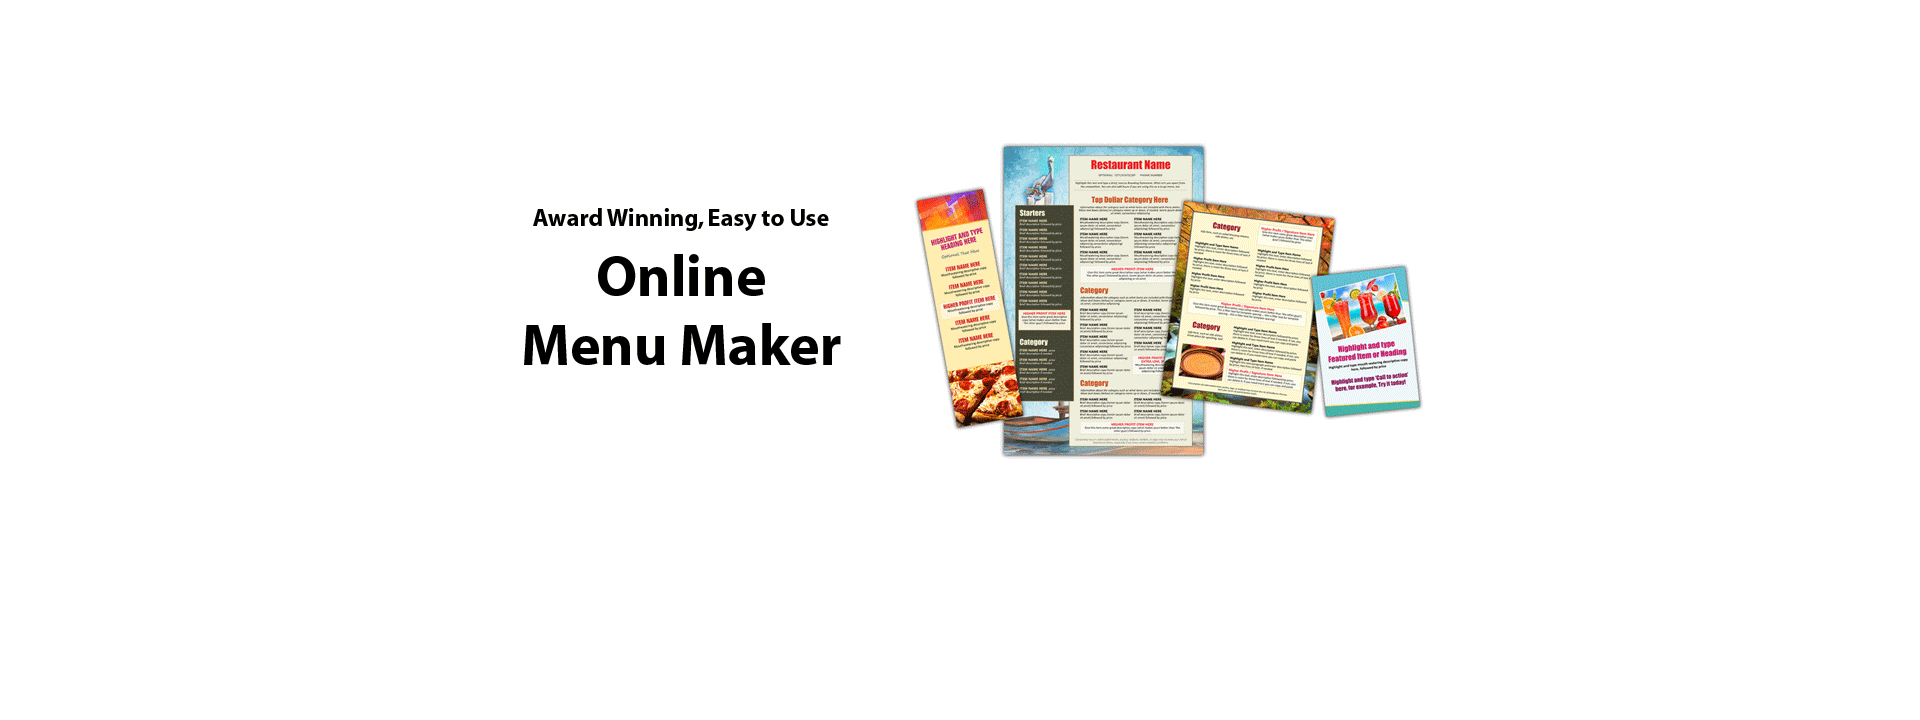 Create Your Own Restaurant Menu Templates Using Microsoft Word At Themenumaker Through Our Service You Can Design Quickly And